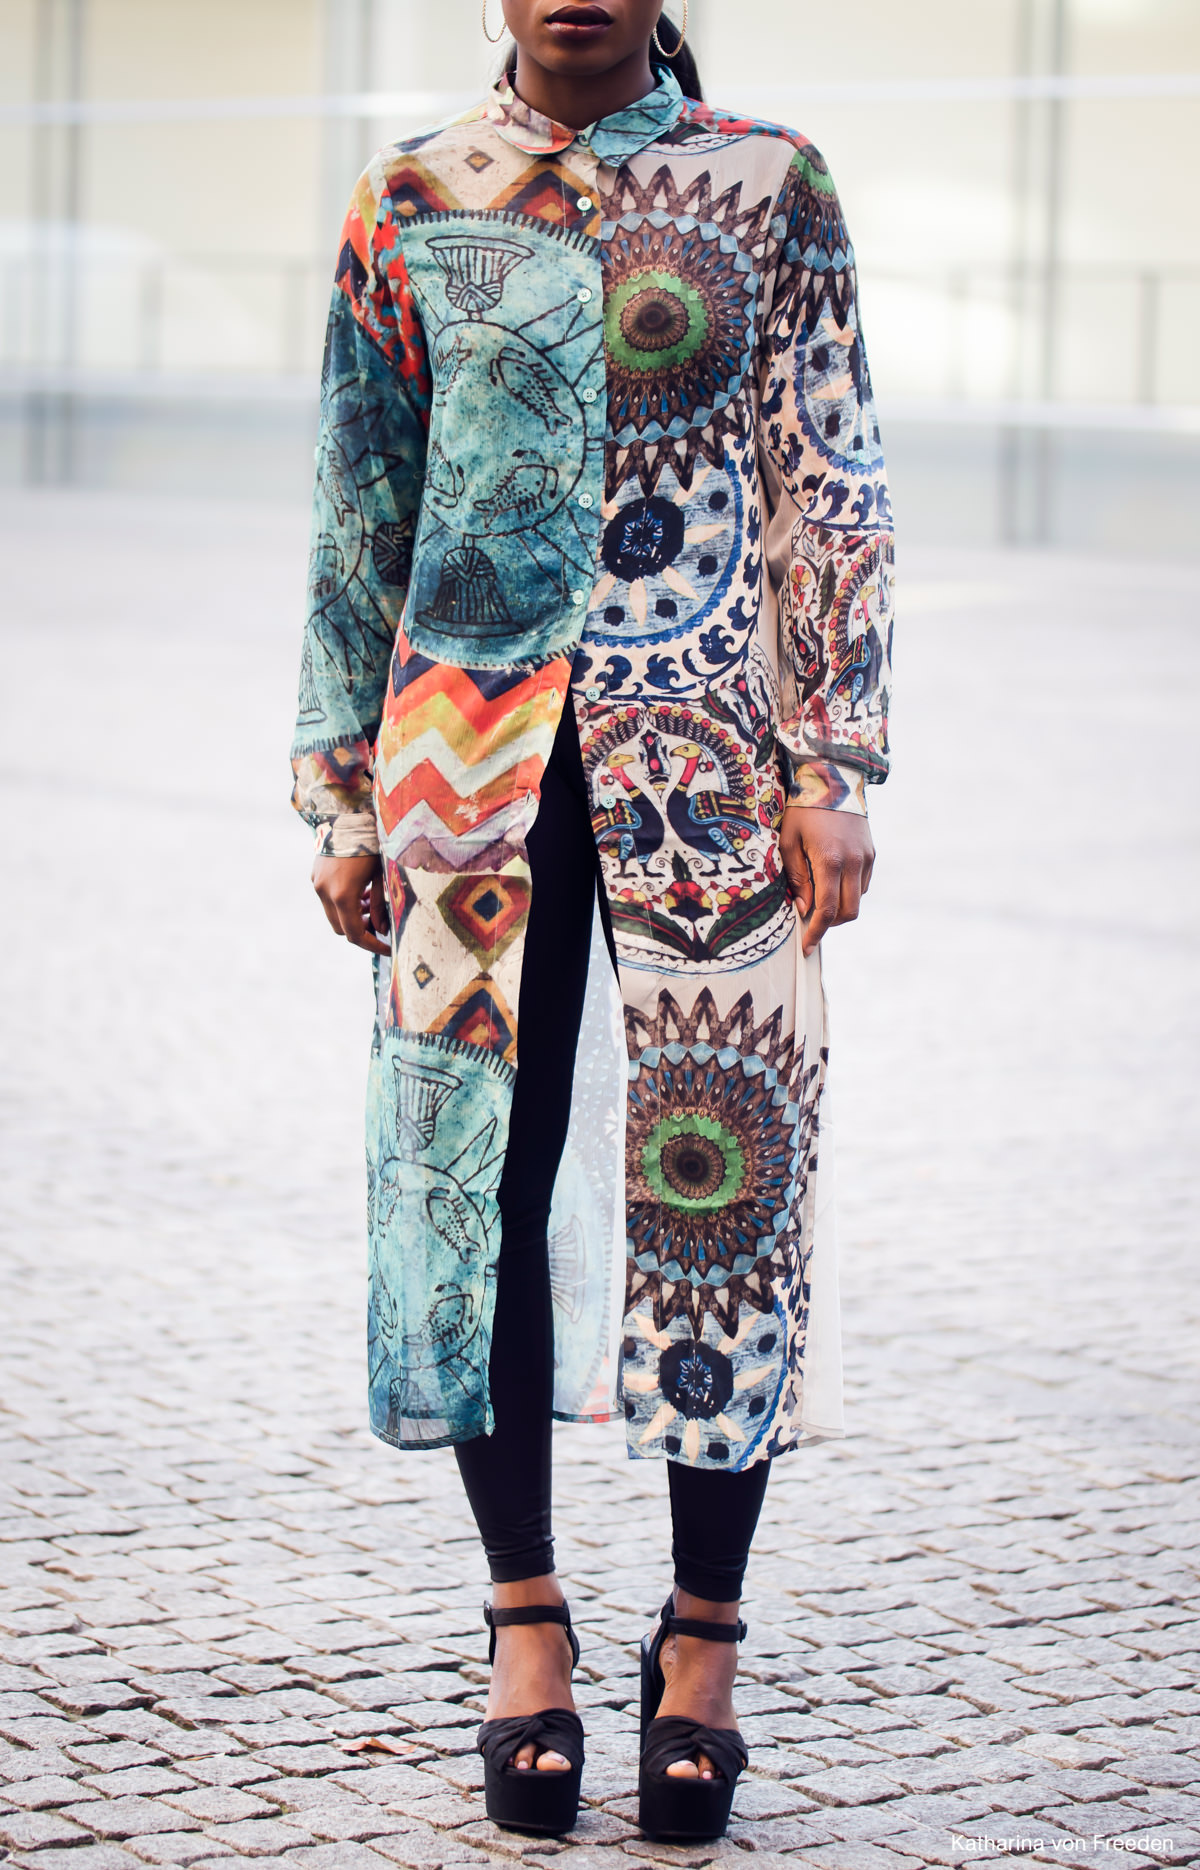 shirt-leggings-high-heels-phuckitfashion